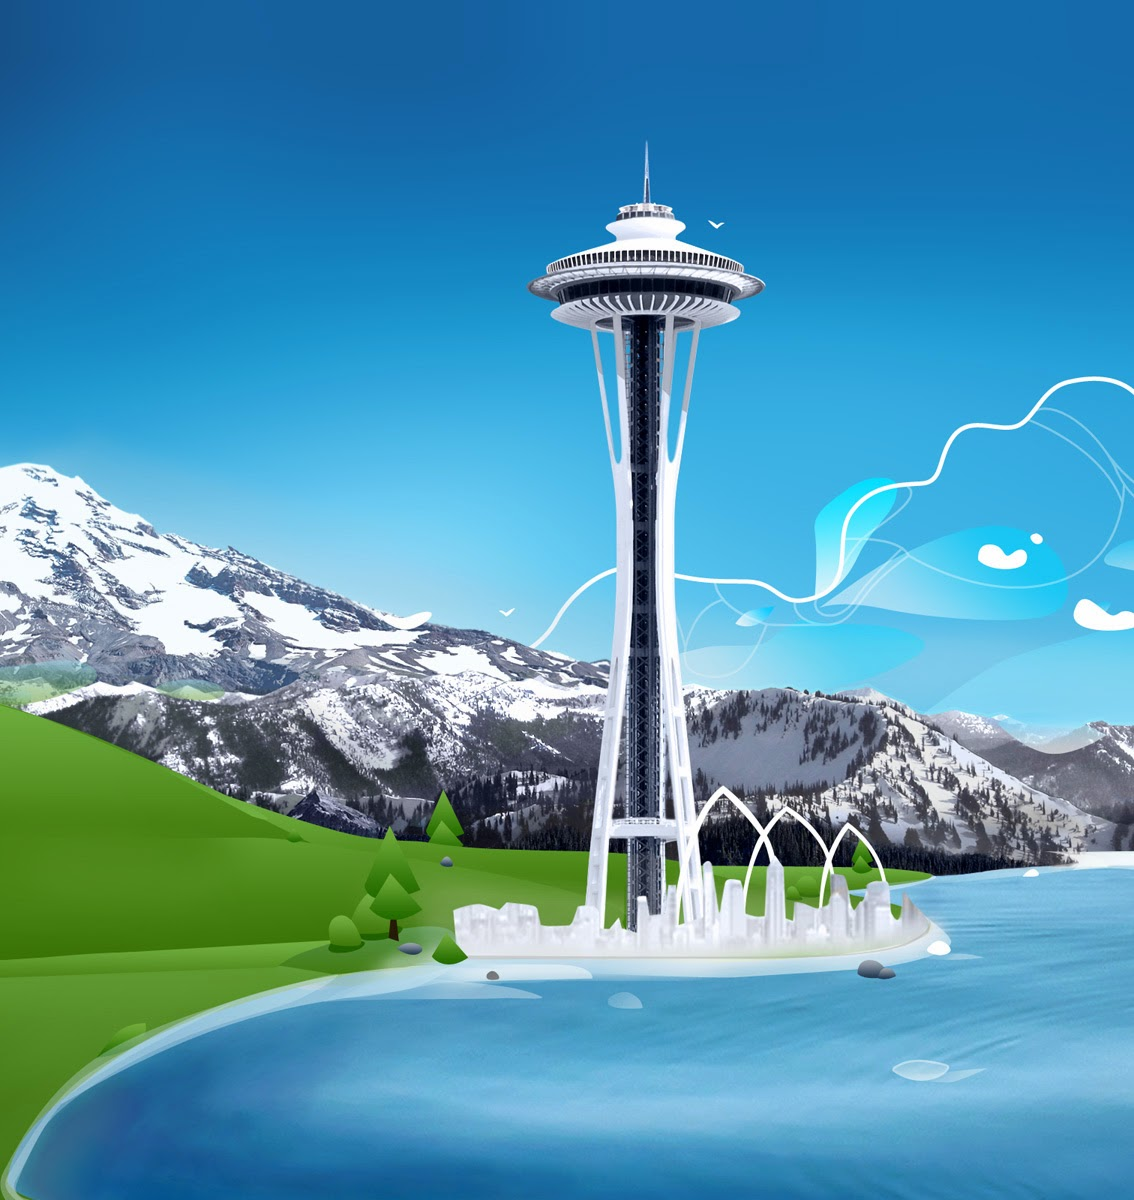 Free Windows 8 Hd Live Wallpaper Download For Android